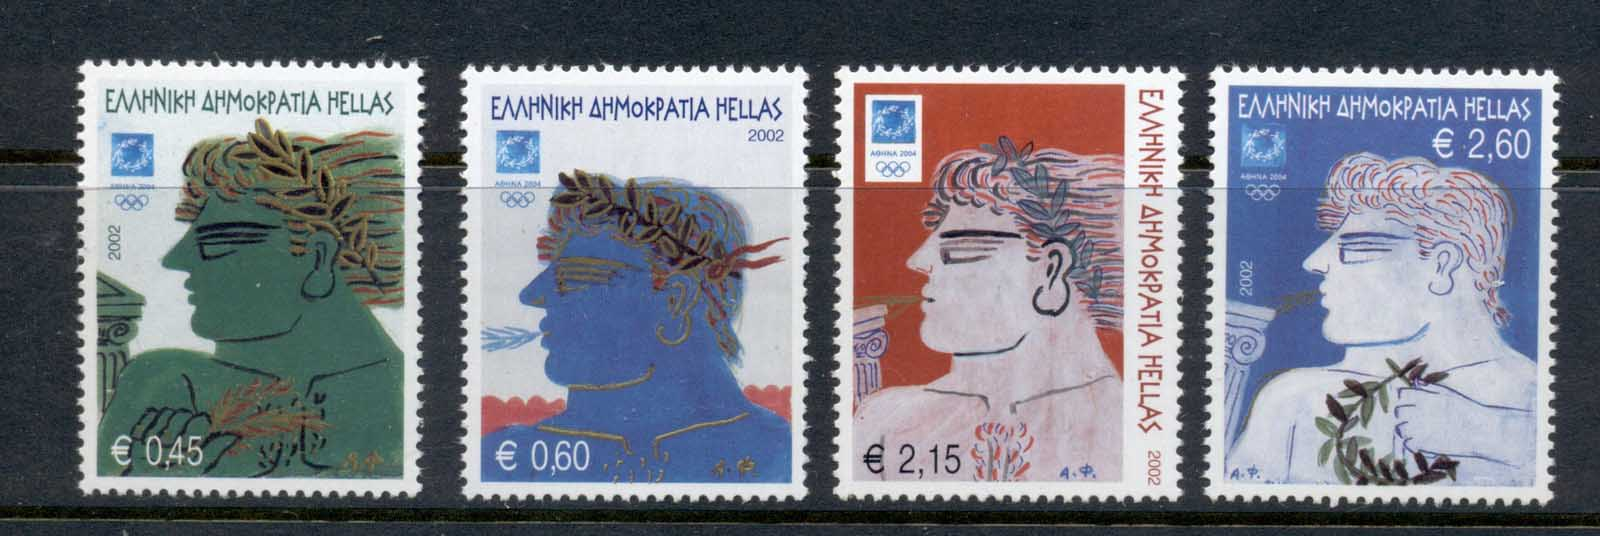 Greece 2002 Ancient Olympic Winners MUH